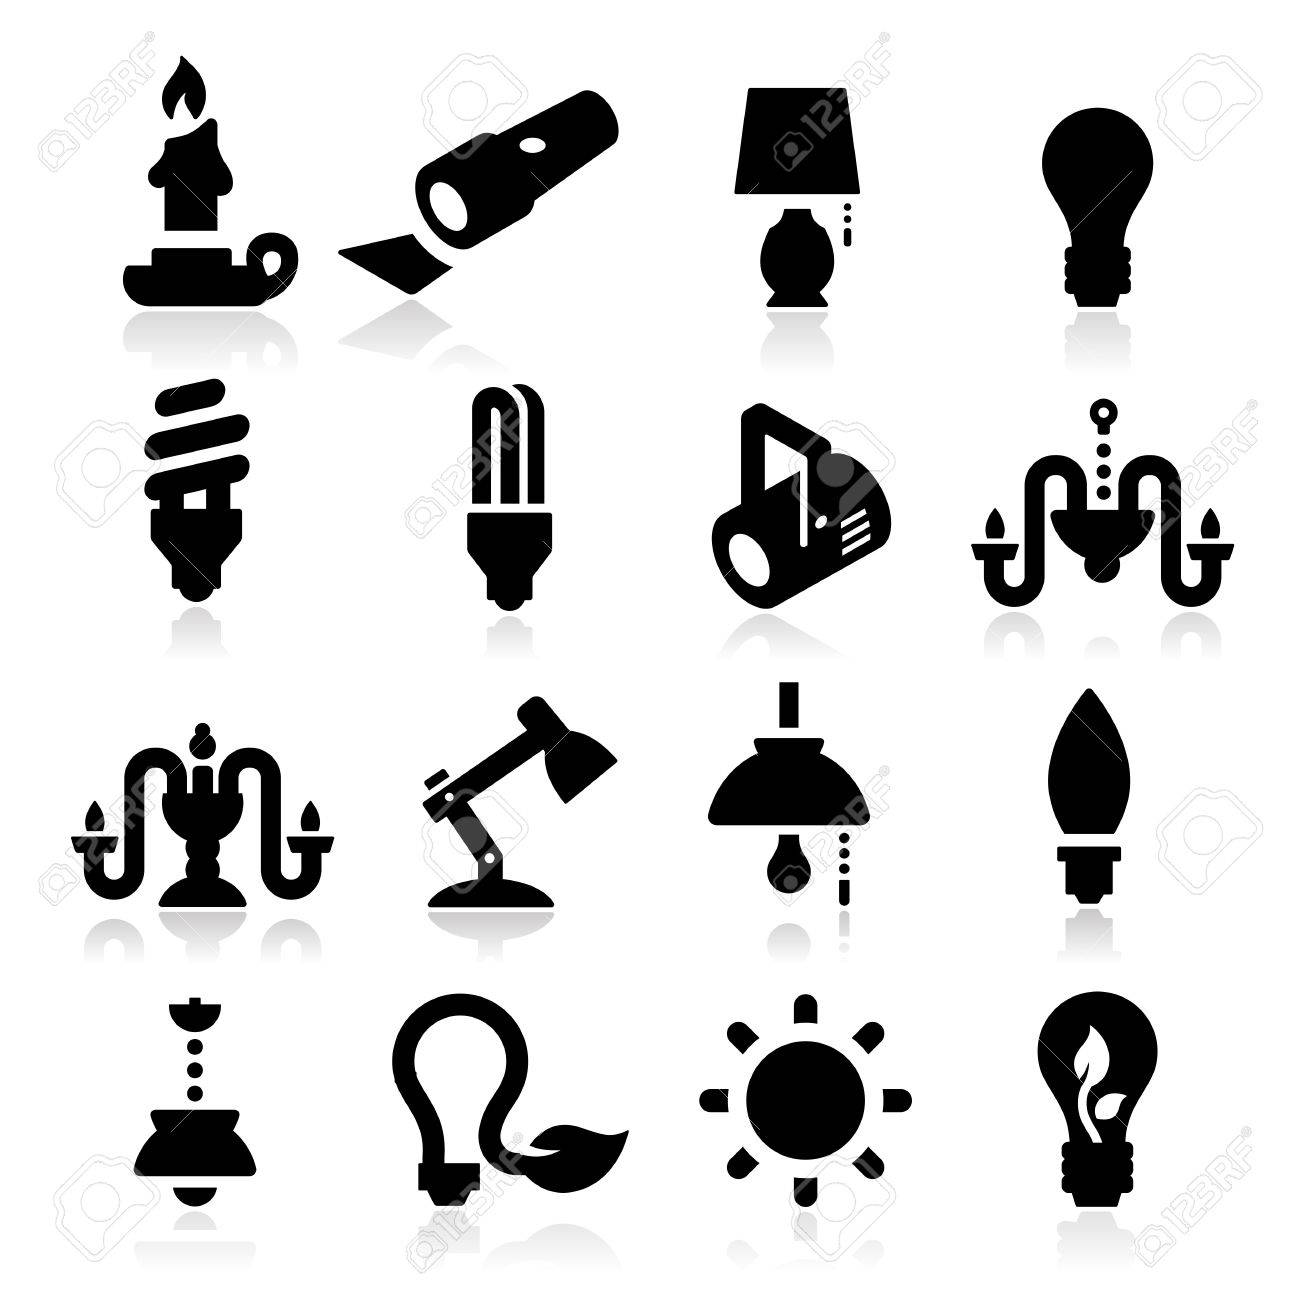 Light Icons Stock Vector - 20984913